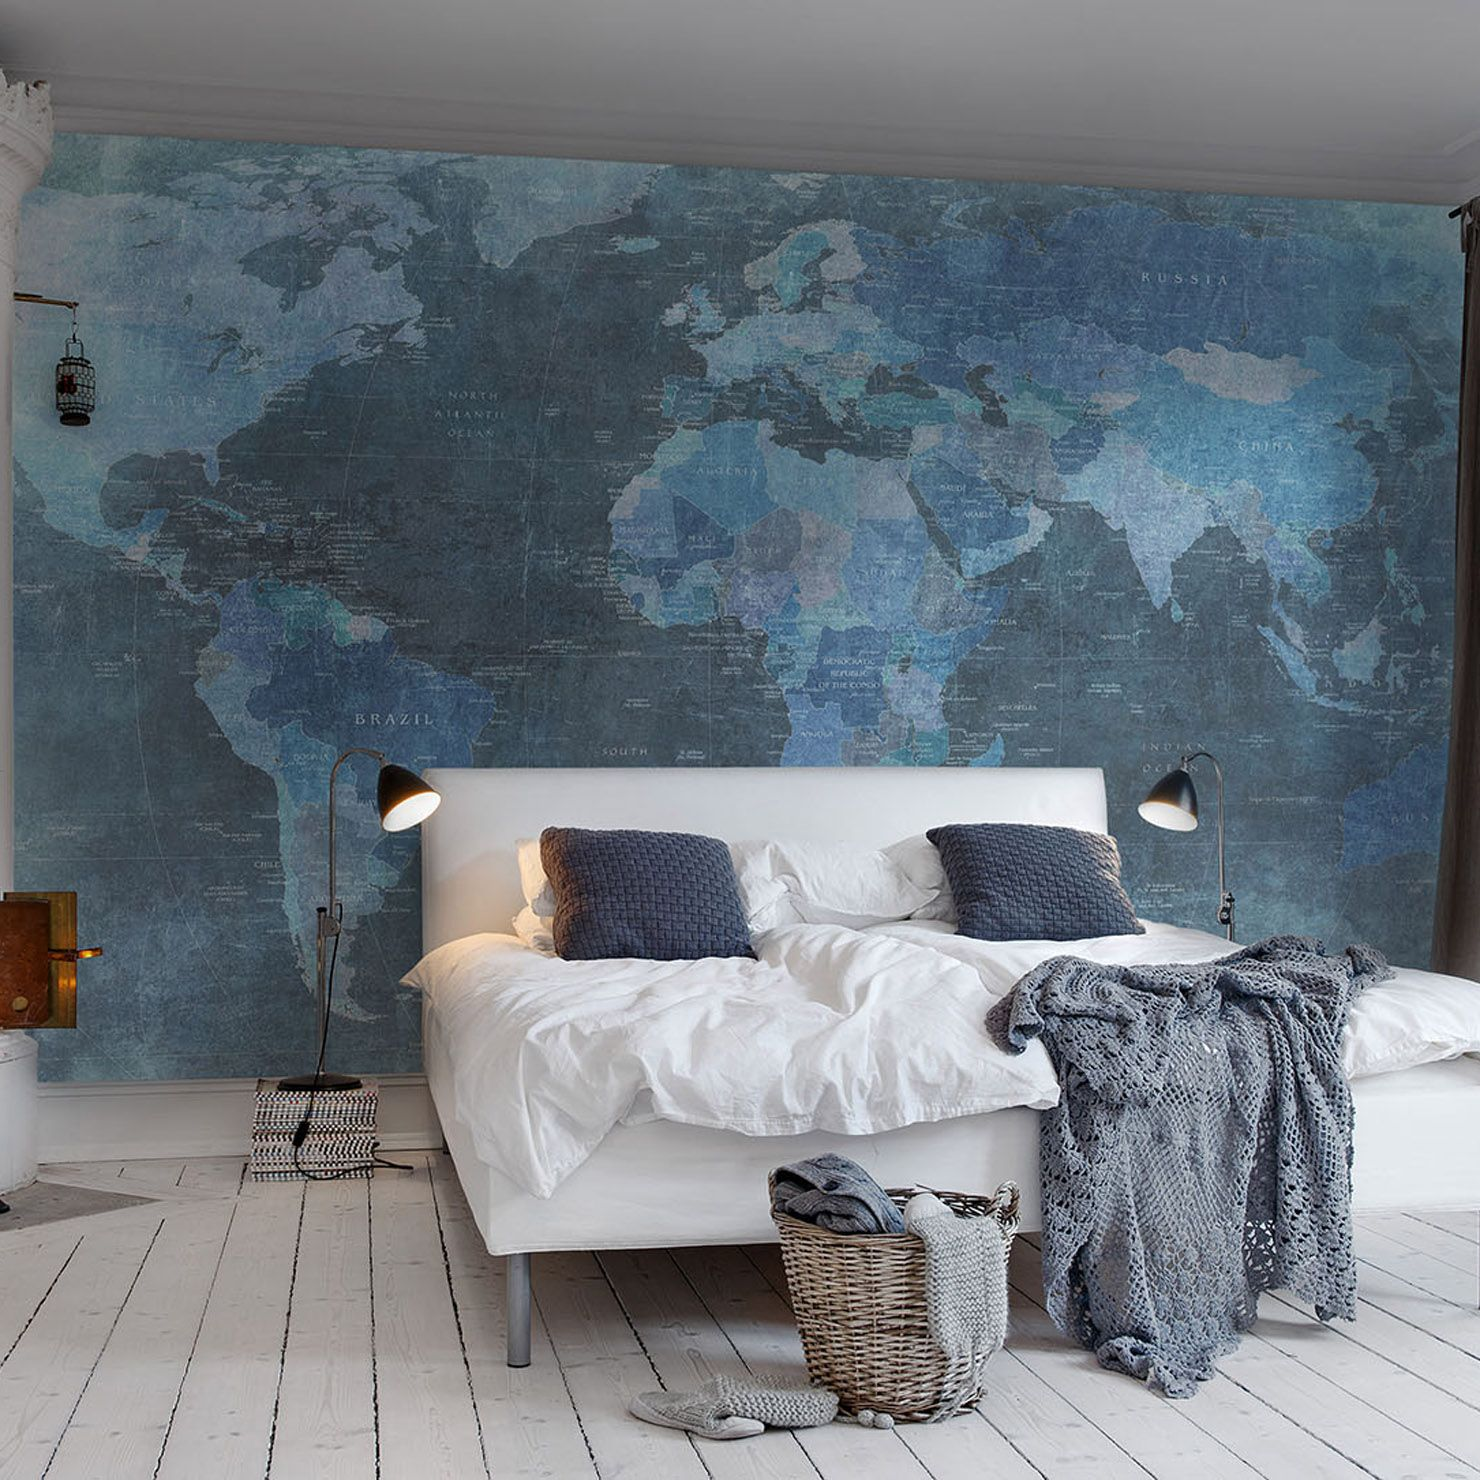 Best 25 world map wallpaper ideas on pinterest world for Boys bedroom mural